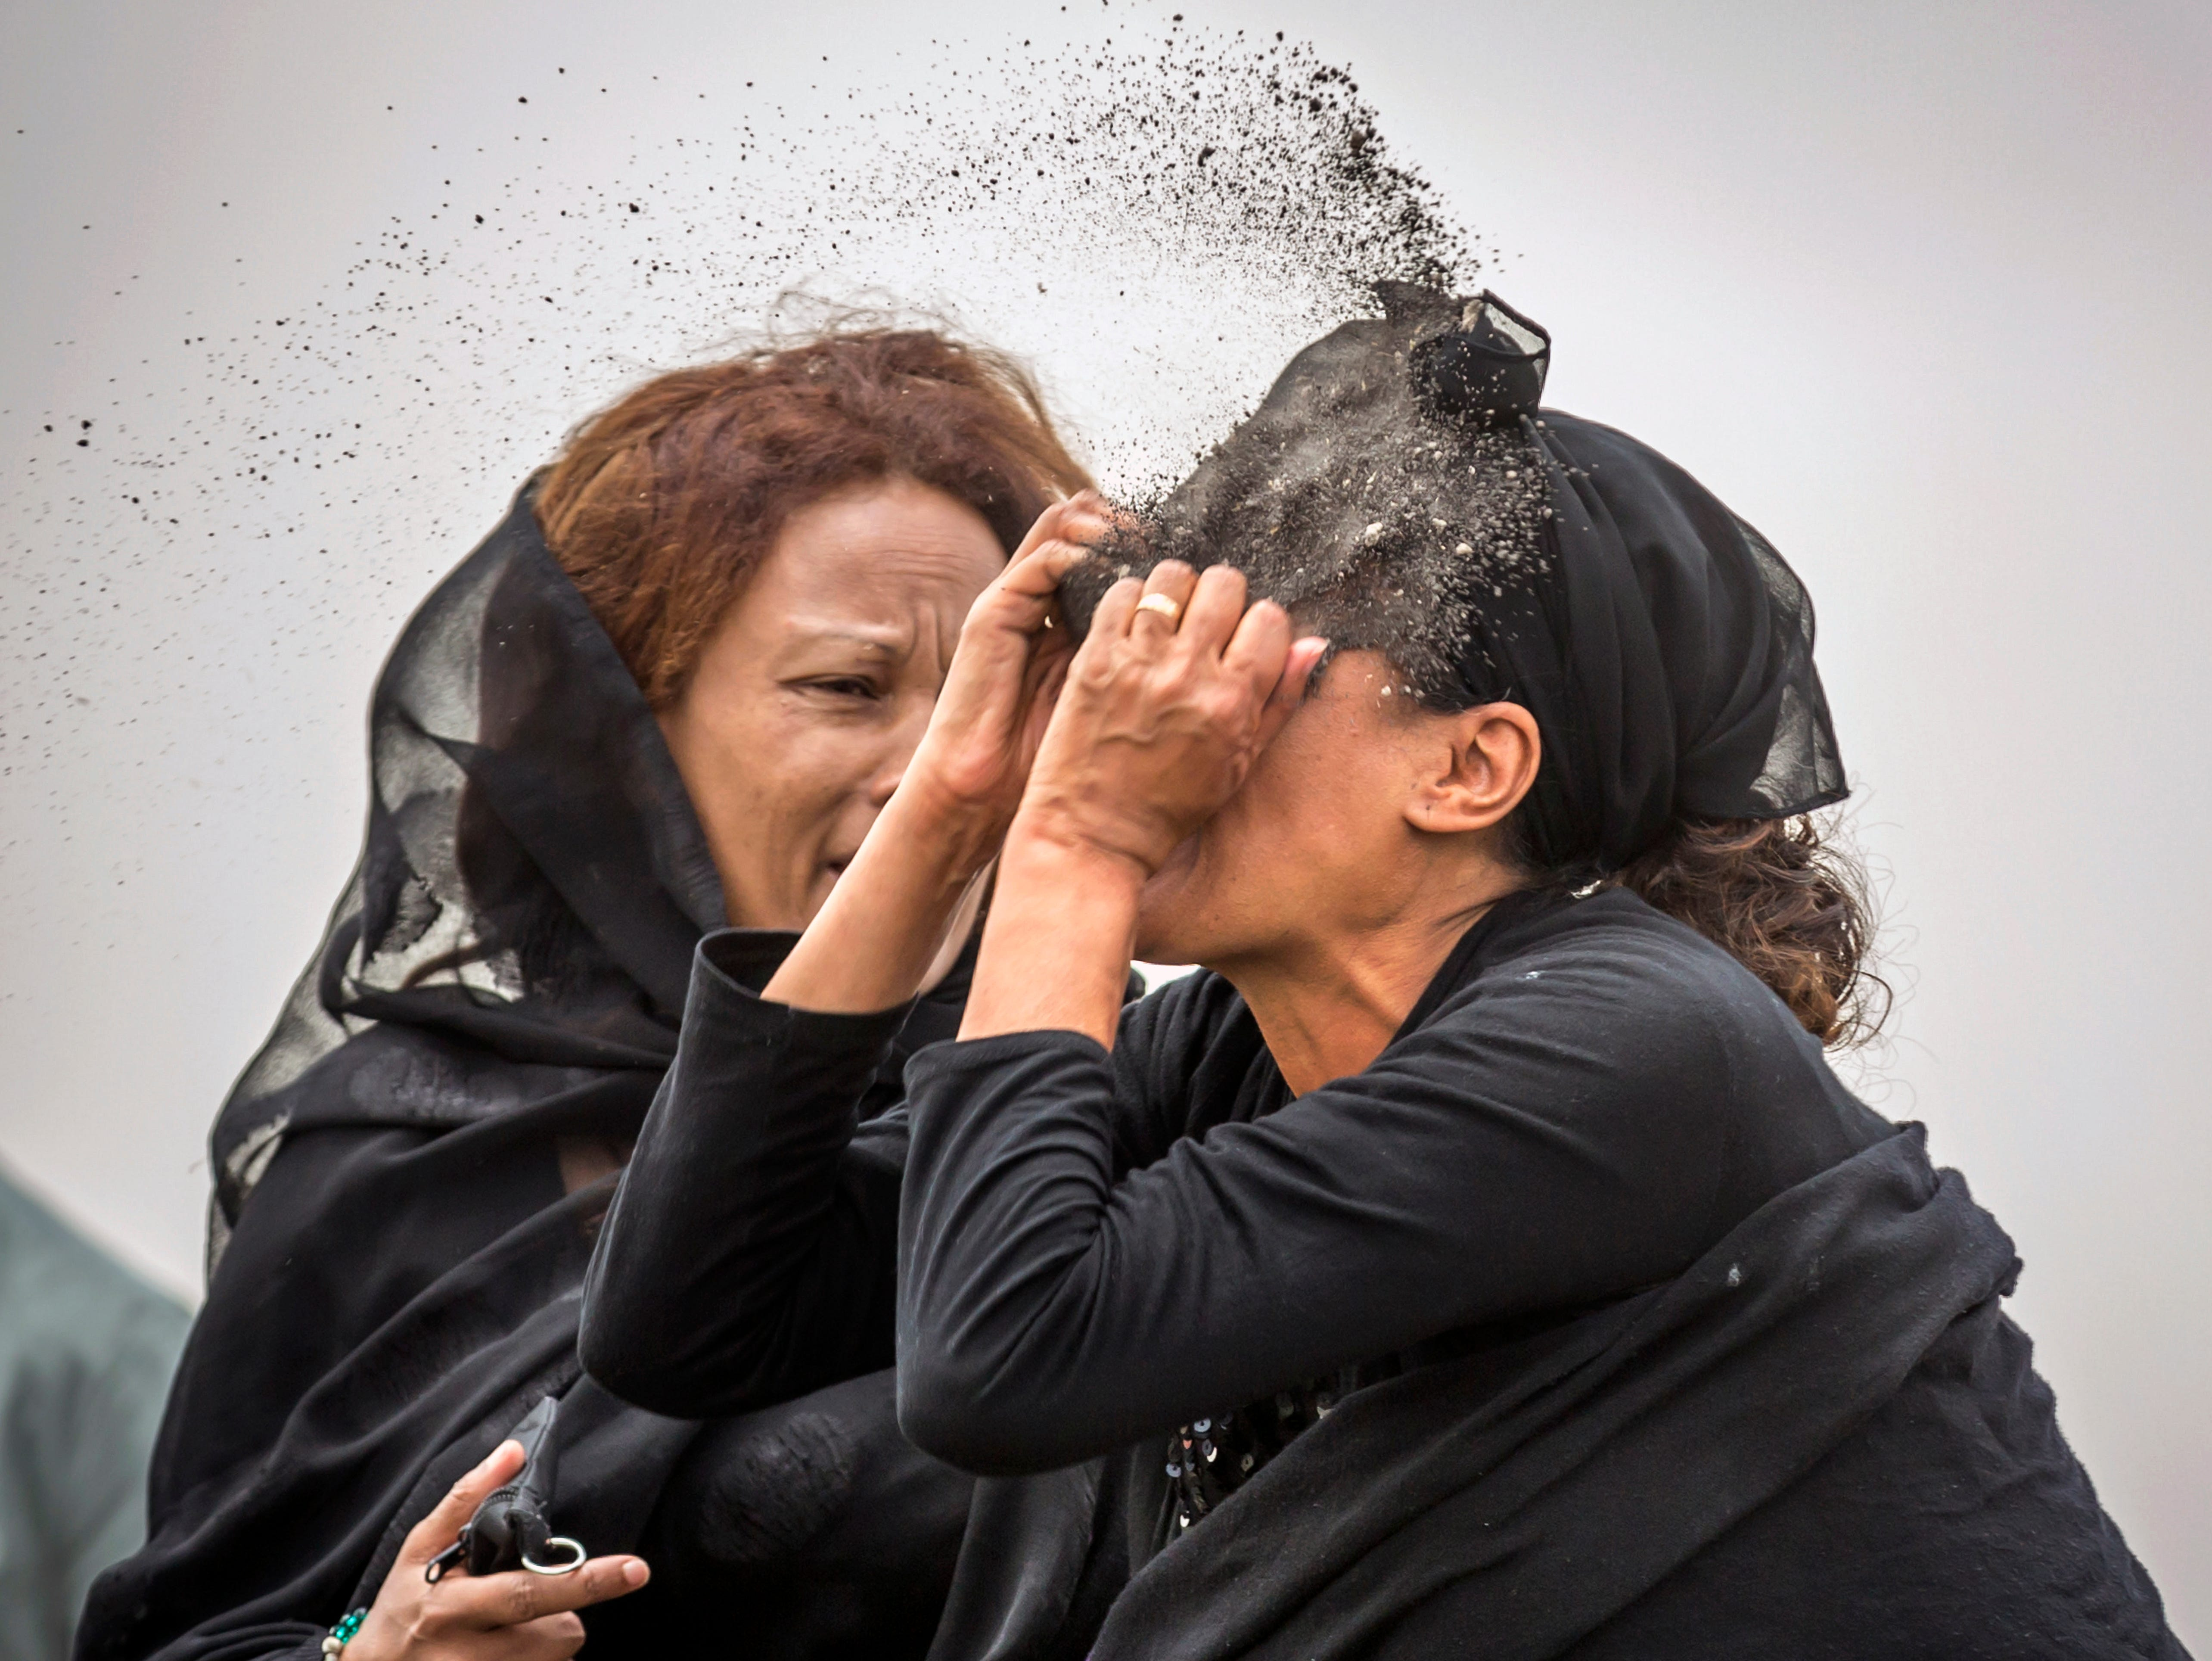 An Ethiopian relative of a crash victim throws dirt in her own face after realizing that there is nothing physical left of her loved one, as she mourns at the scene where the Ethiopian Airlines Boeing 737 Max 8 crashed shortly after takeoff on Sunday killing all 157 on board, near Bishoftu, south-east of Addis Ababa, in Ethiopia Thursday, March 14, 2019. About 200 family members of people who died on the crashed jet stormed out of a briefing with Ethiopian Airlines officials in Addis Ababa on Thursday, complaining that the airline has not given them adequate information.